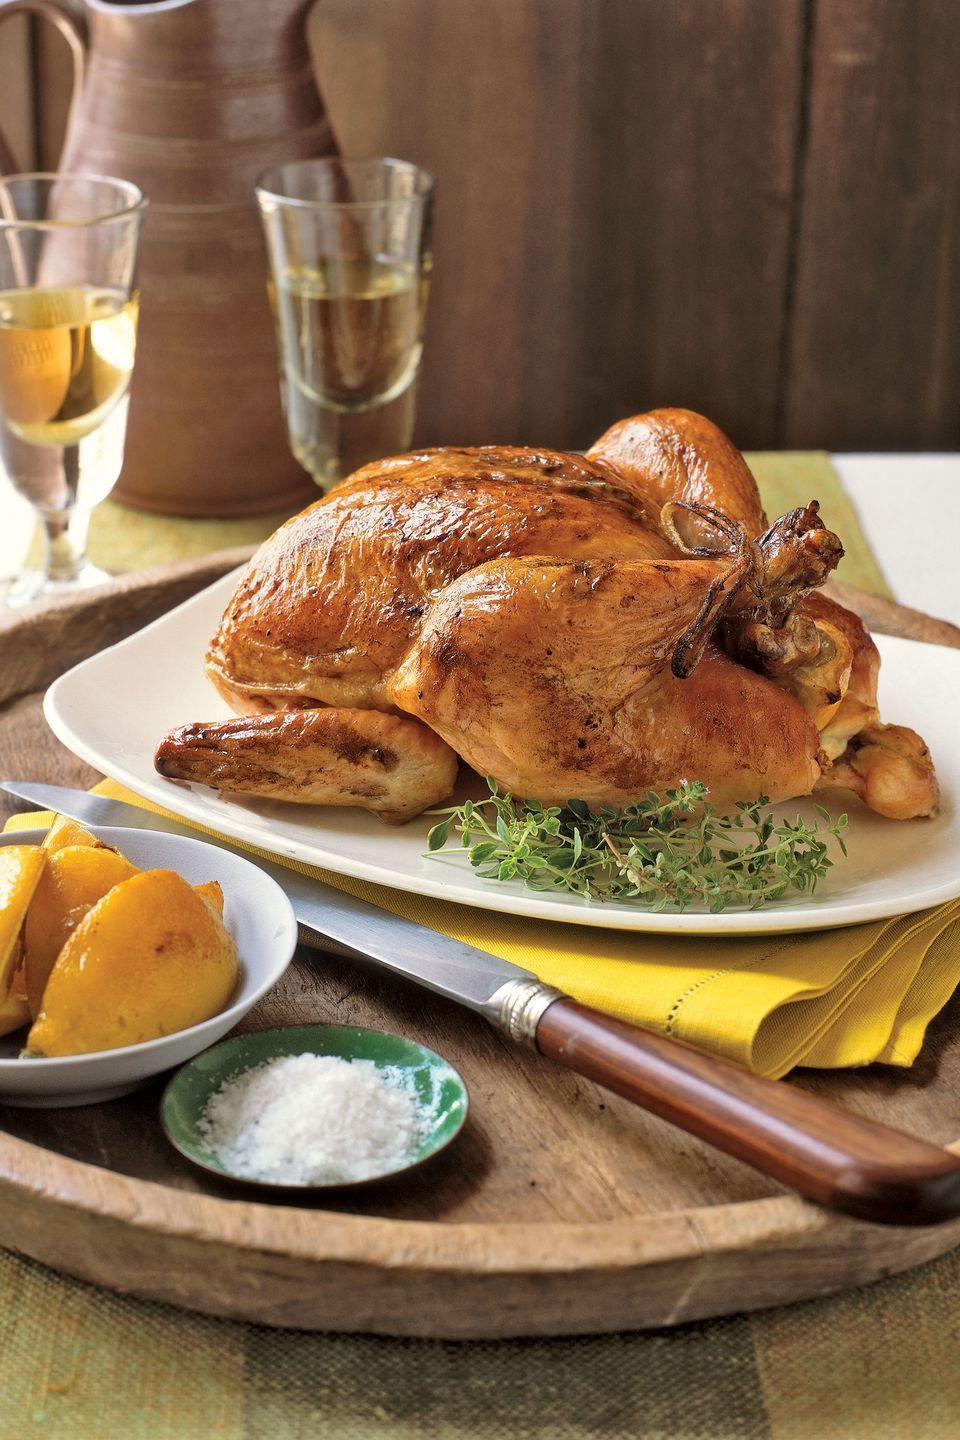 """<p>A lemon inserted into the chicken's cavity during roasting keeps the meat moist and juicy. Seasoning the skin with zest imparts flavor and salt makes it crisp.</p><p><strong><a href=""""https://www.countryliving.com/food-drinks/recipes/a1562/roast-lemon-chicken-3677/"""" rel=""""nofollow noopener"""" target=""""_blank"""" data-ylk=""""slk:Get the recipe"""" class=""""link rapid-noclick-resp"""">Get the recipe</a>.</strong></p>"""